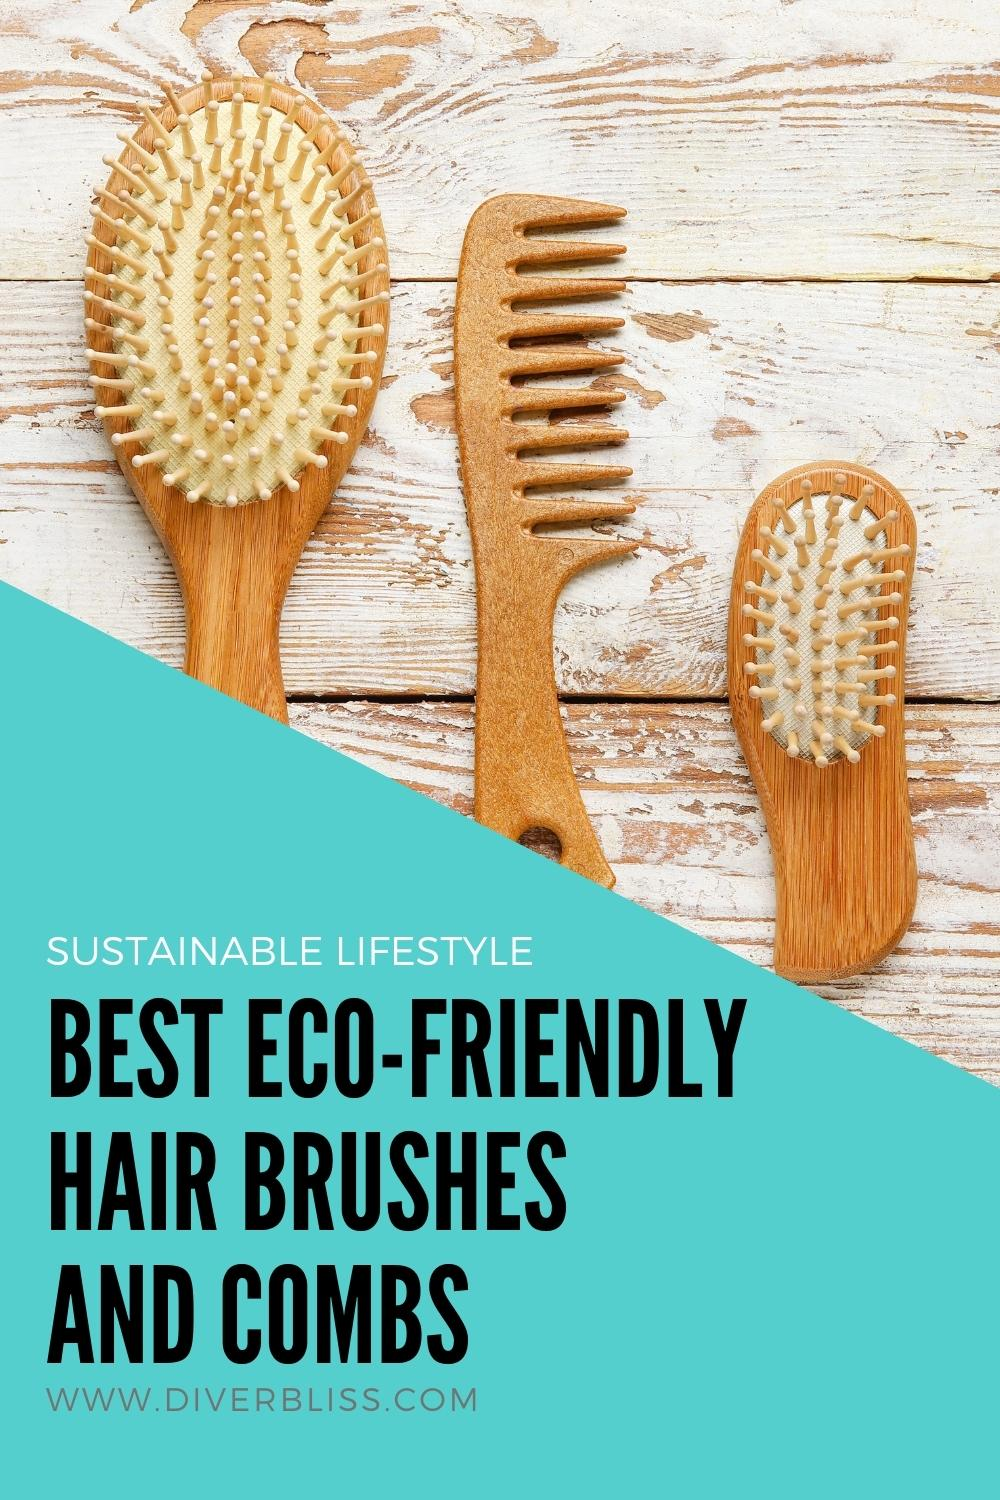 sustainable lifestyle: best eco-friendly hair brushes and combs